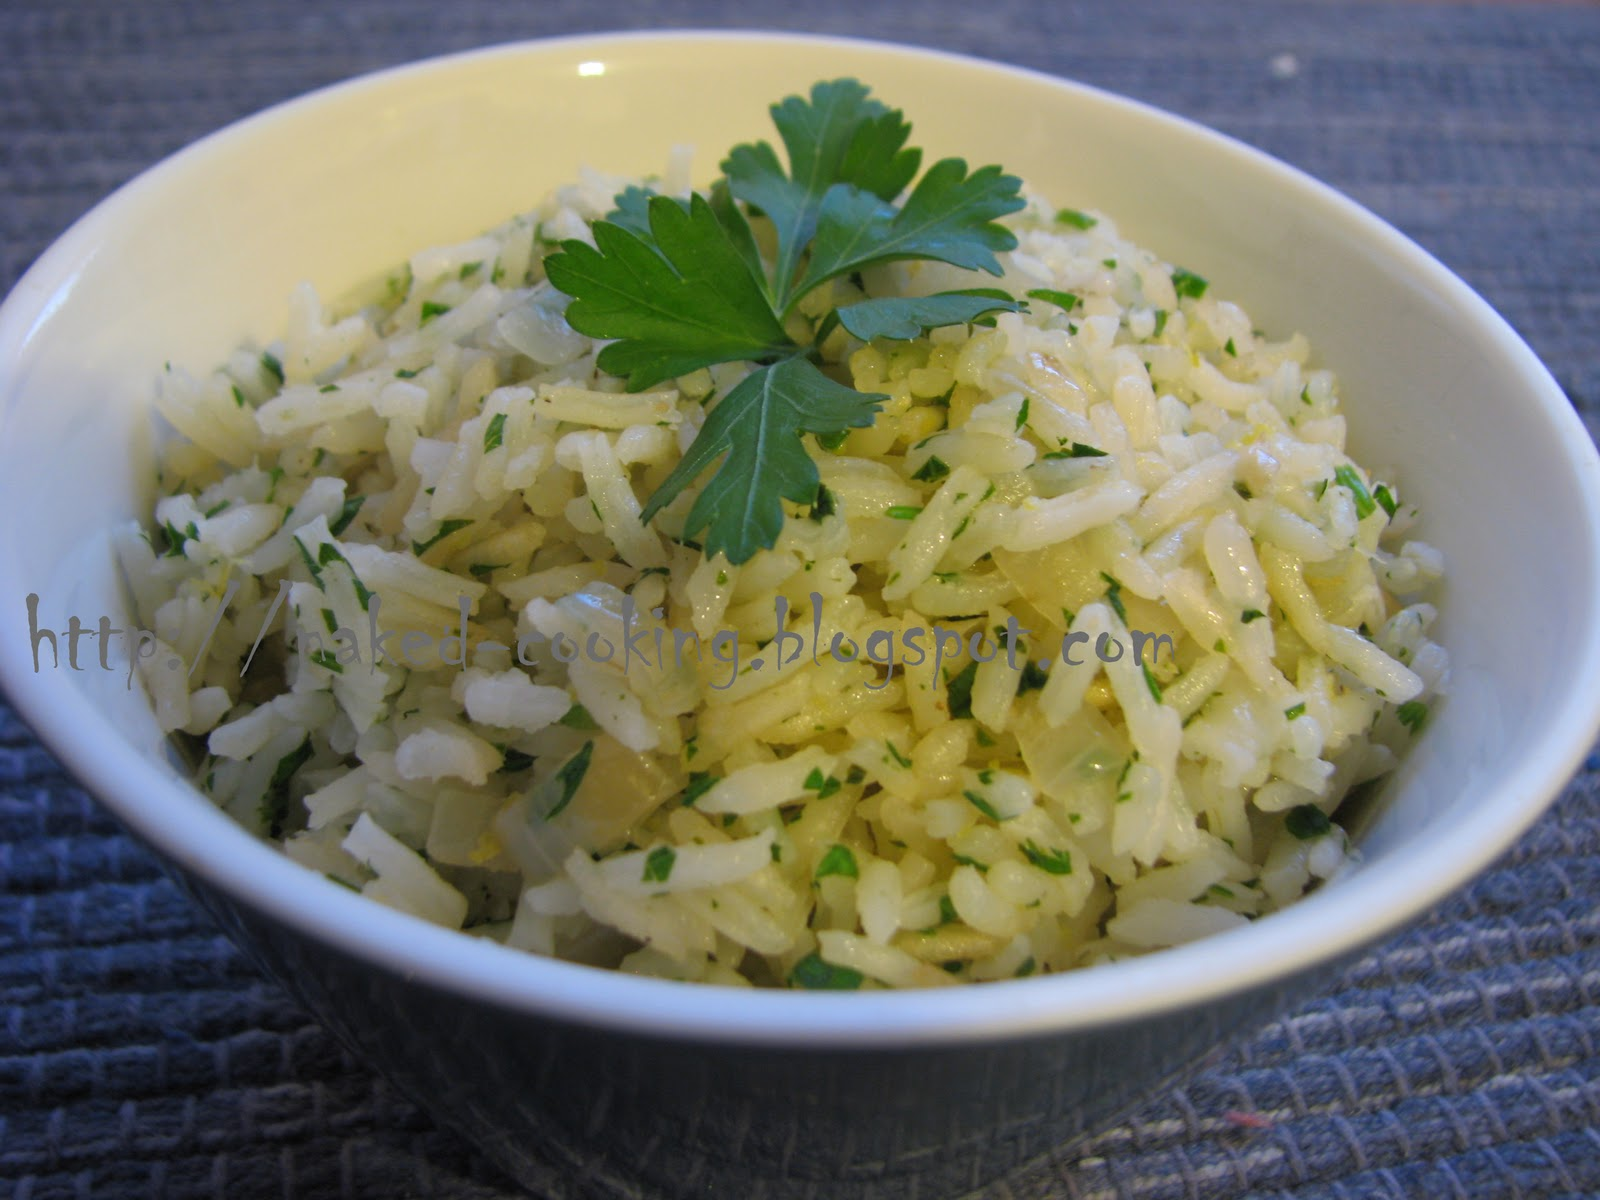 Naked Cooking: Lemon Parsley Rice Pilaf